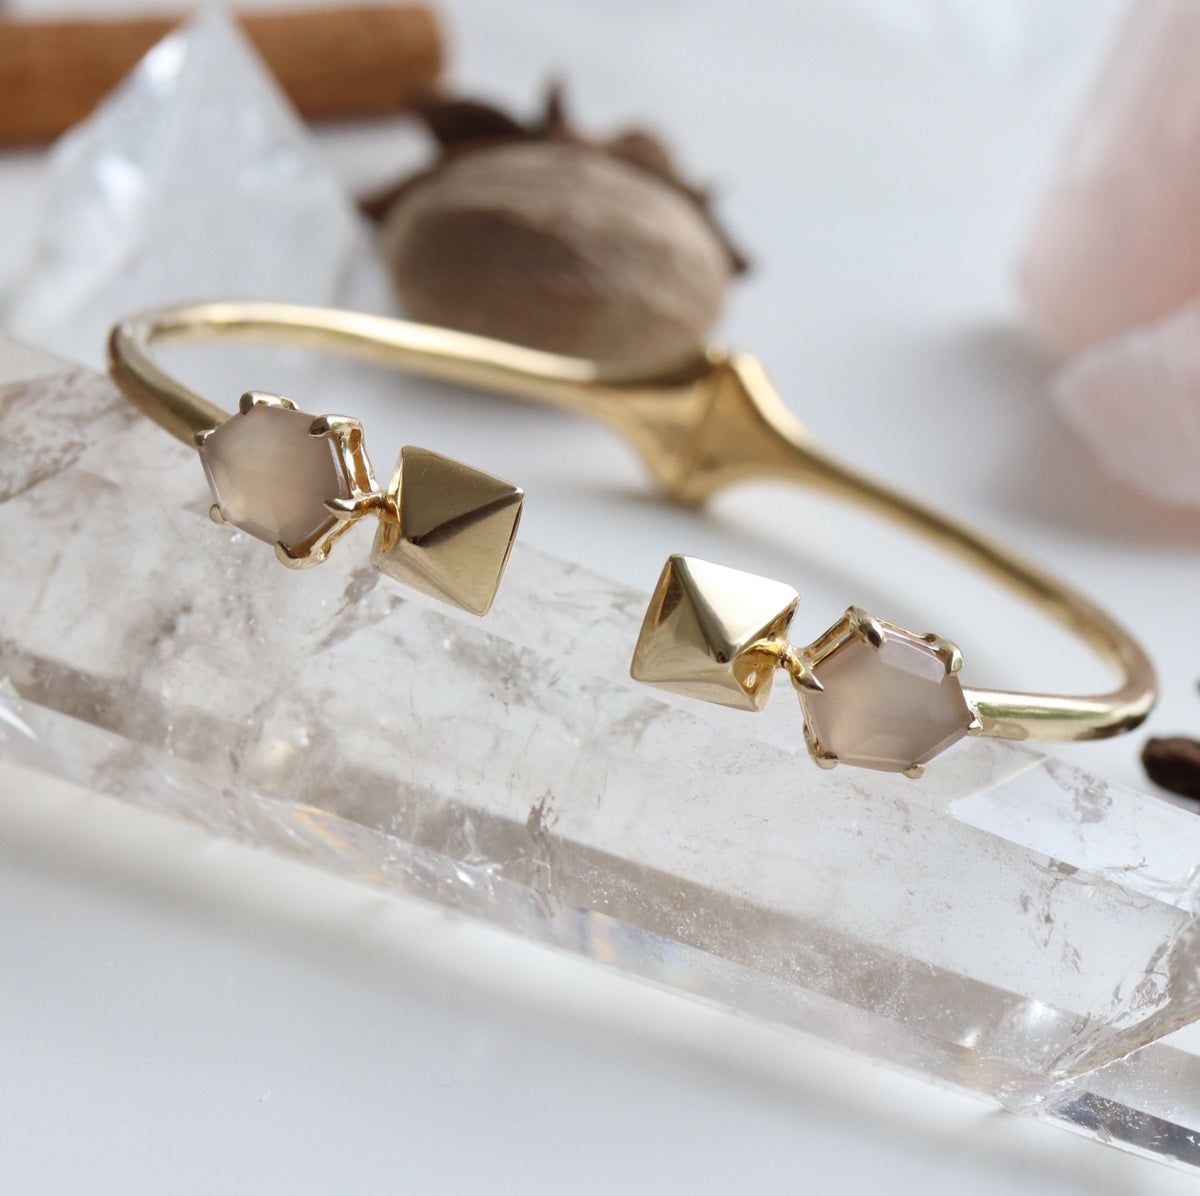 MINI HONOUR SHIELD CUFF - CHAI MOONSTONE & GOLD - LIMITED EDITION - SO PRETTY CARA COTTER